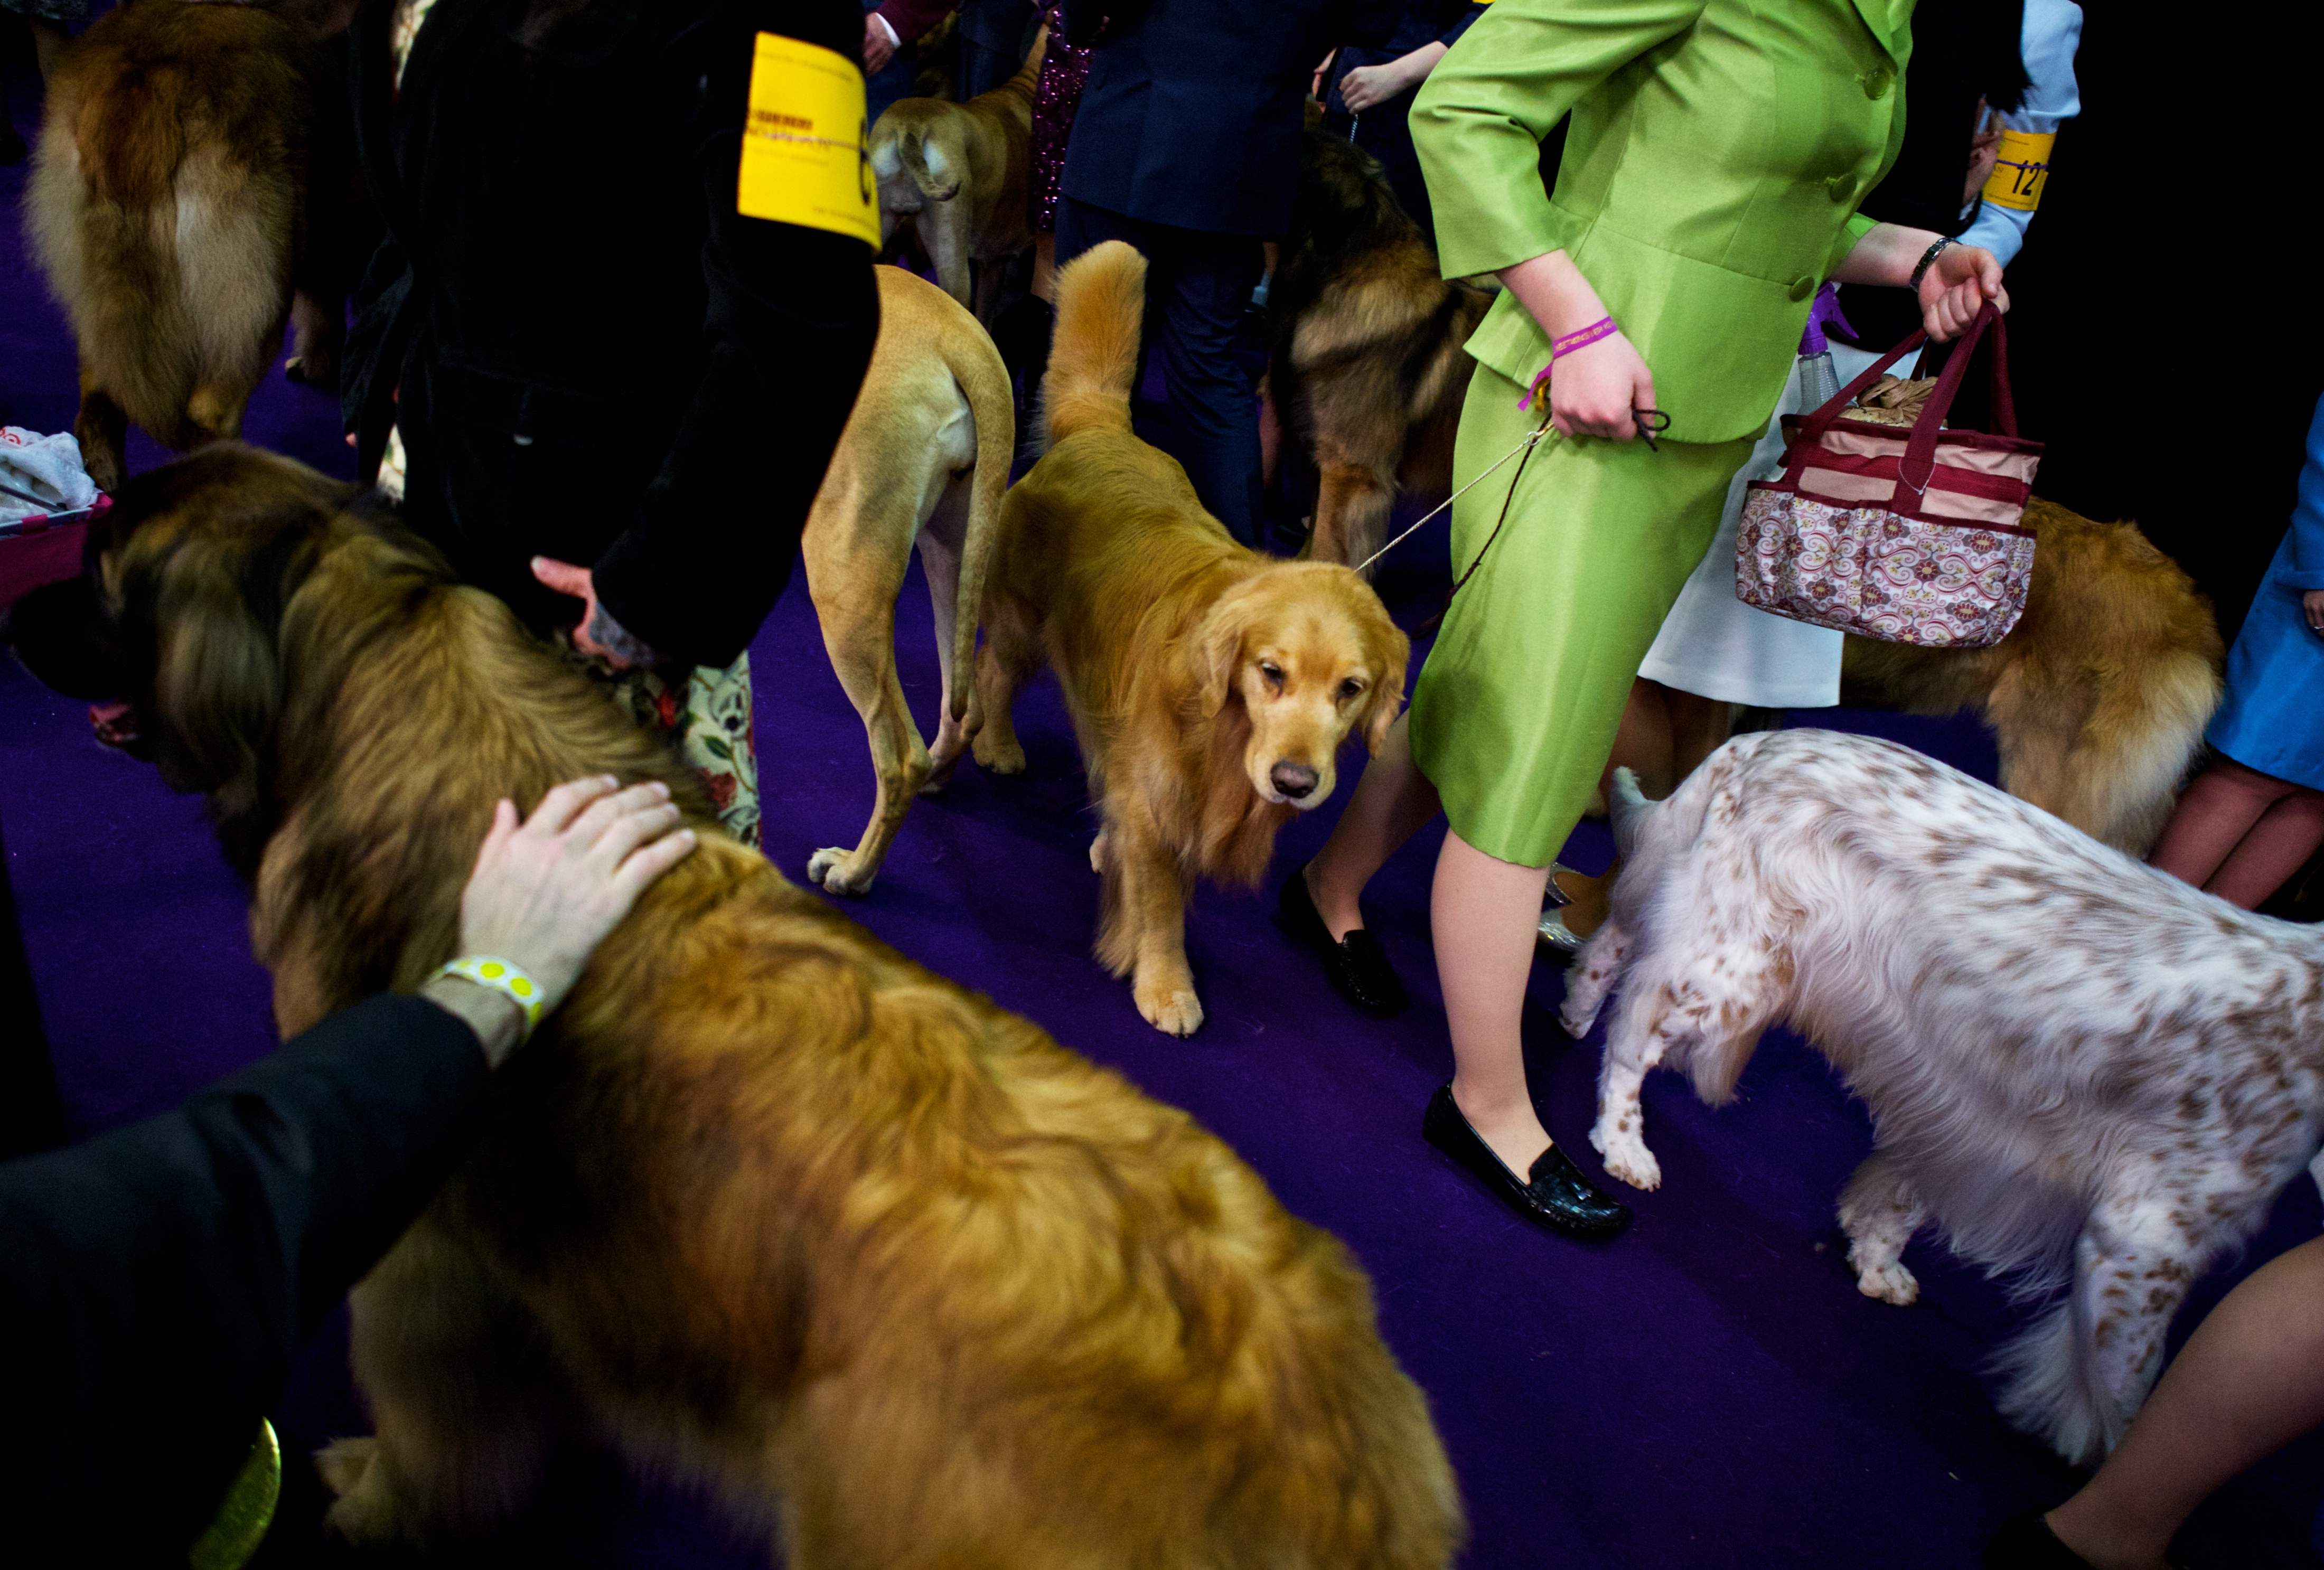 Westminster Dog Show New York Best Of Breed Yorkshire Terrier